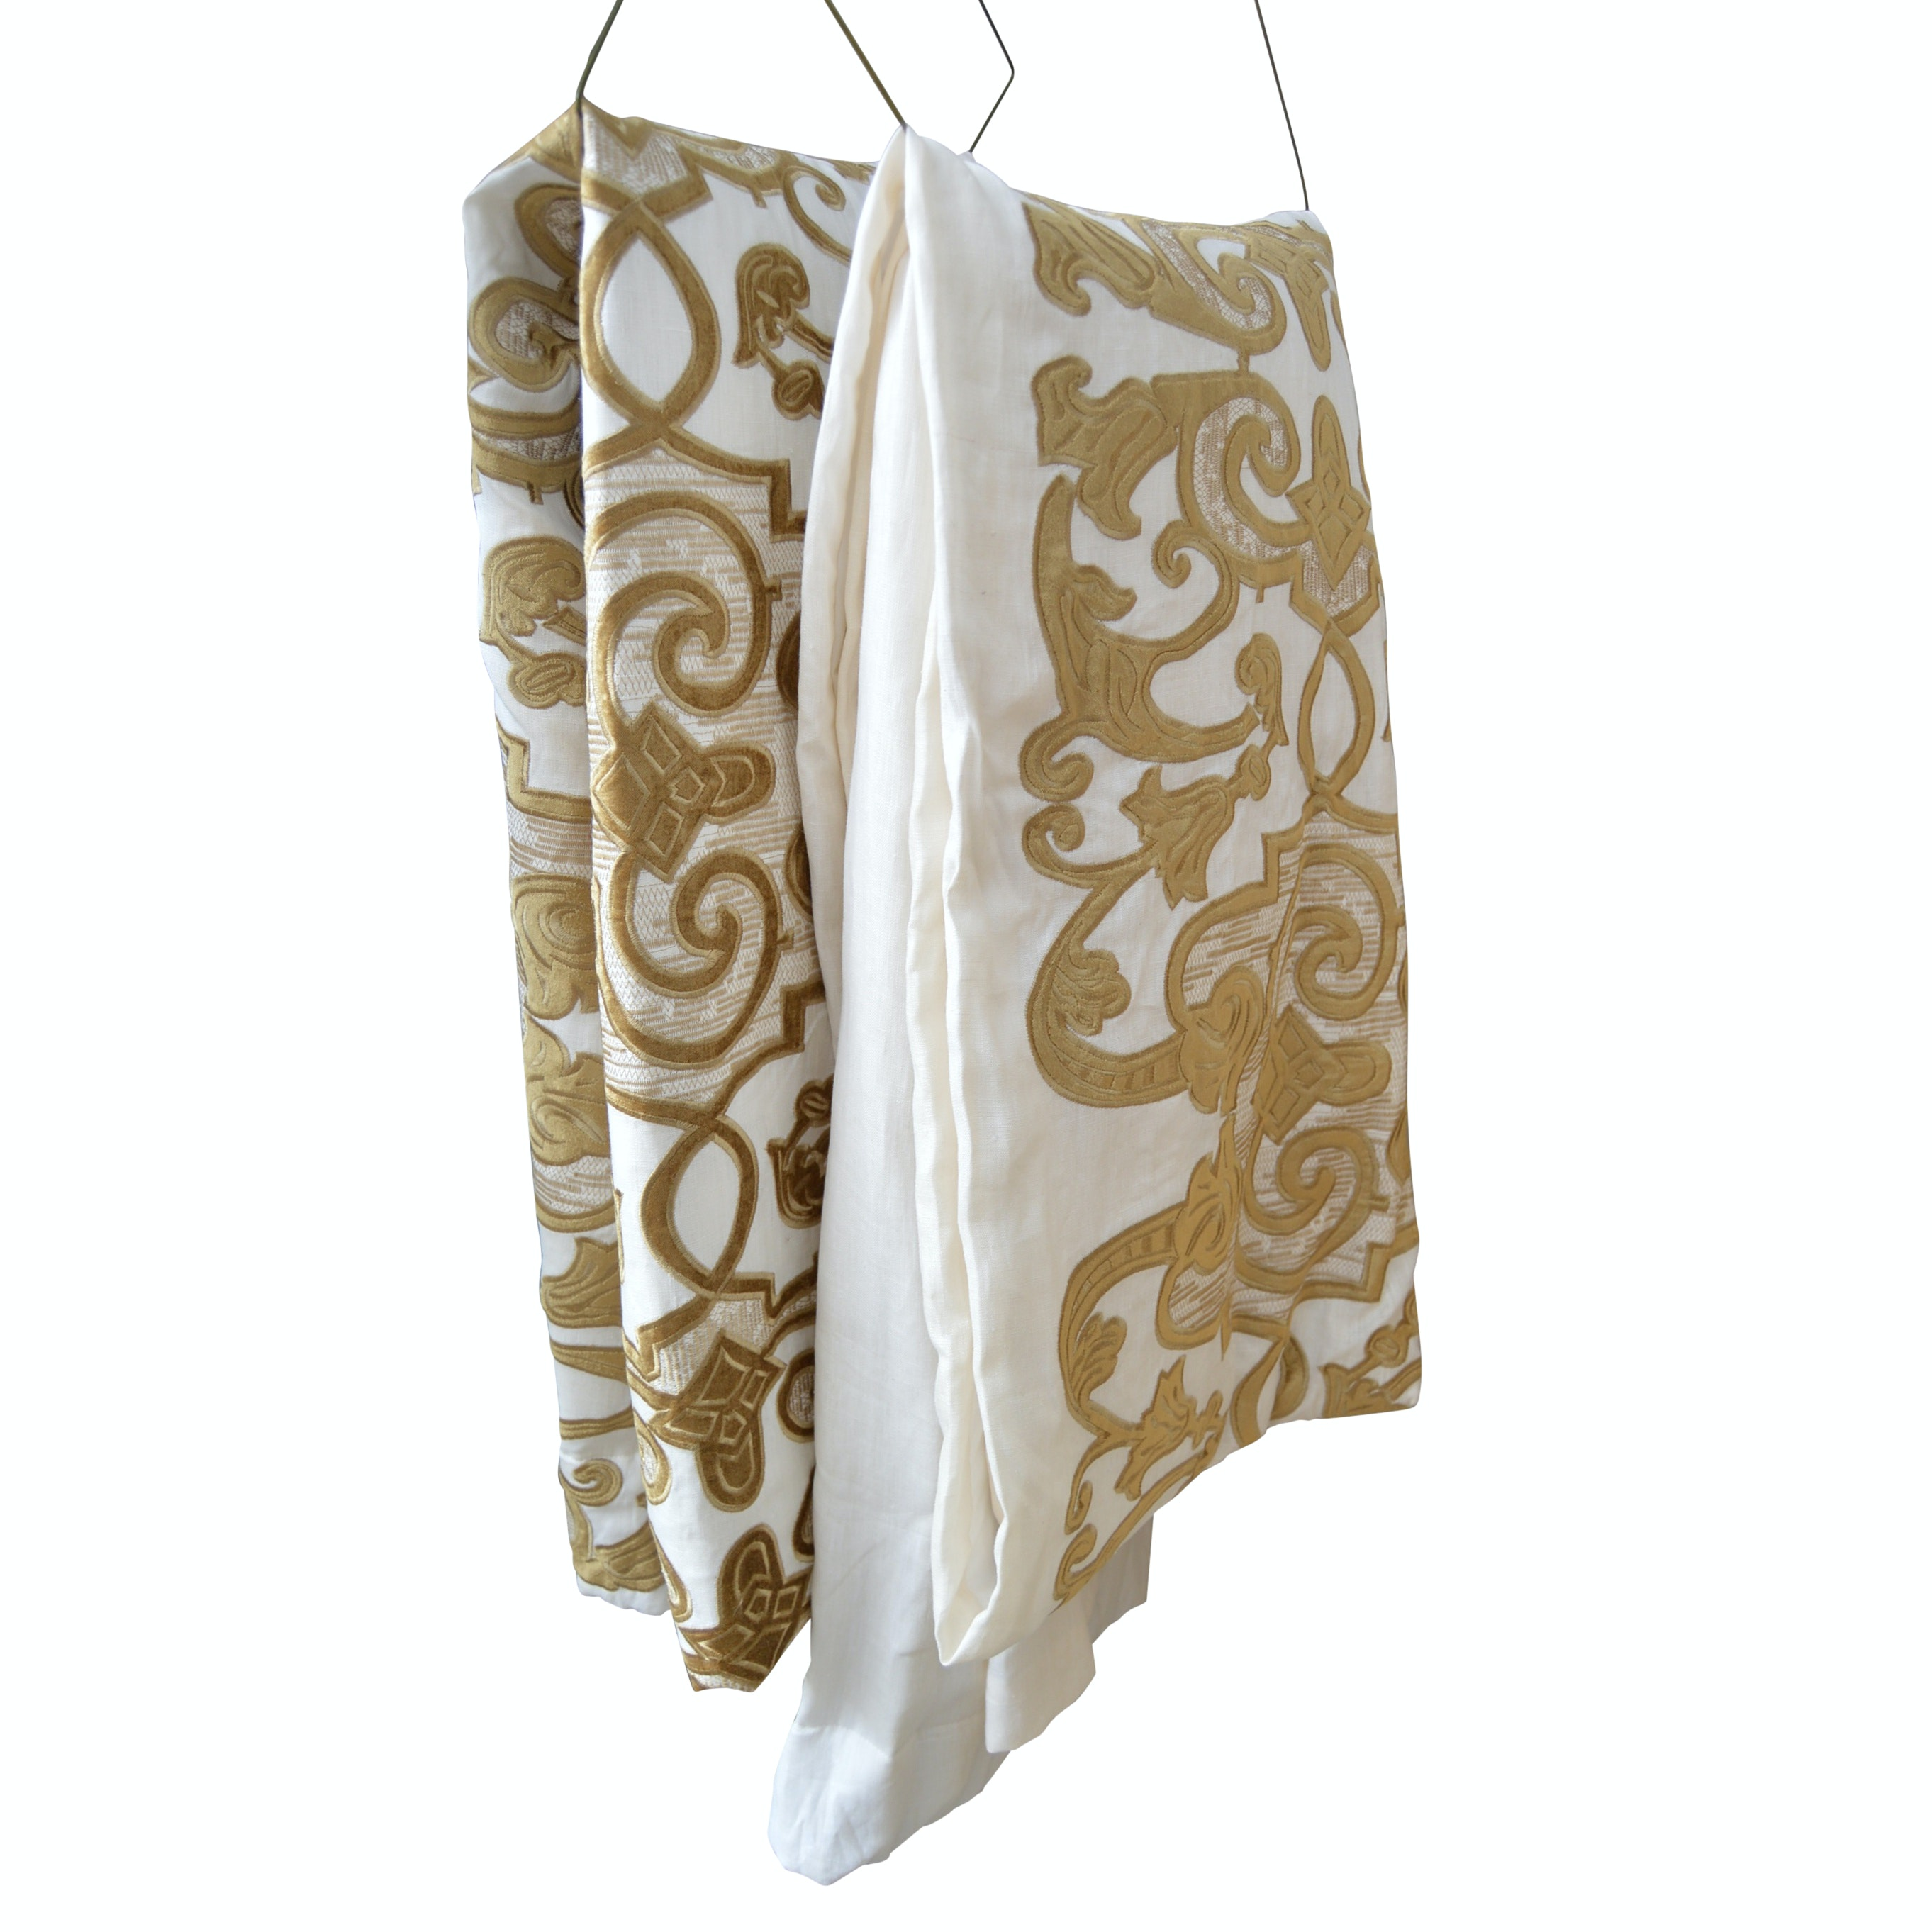 Custom Lined and Insulated Lili Alessandra Draperies in Embroidered Linen